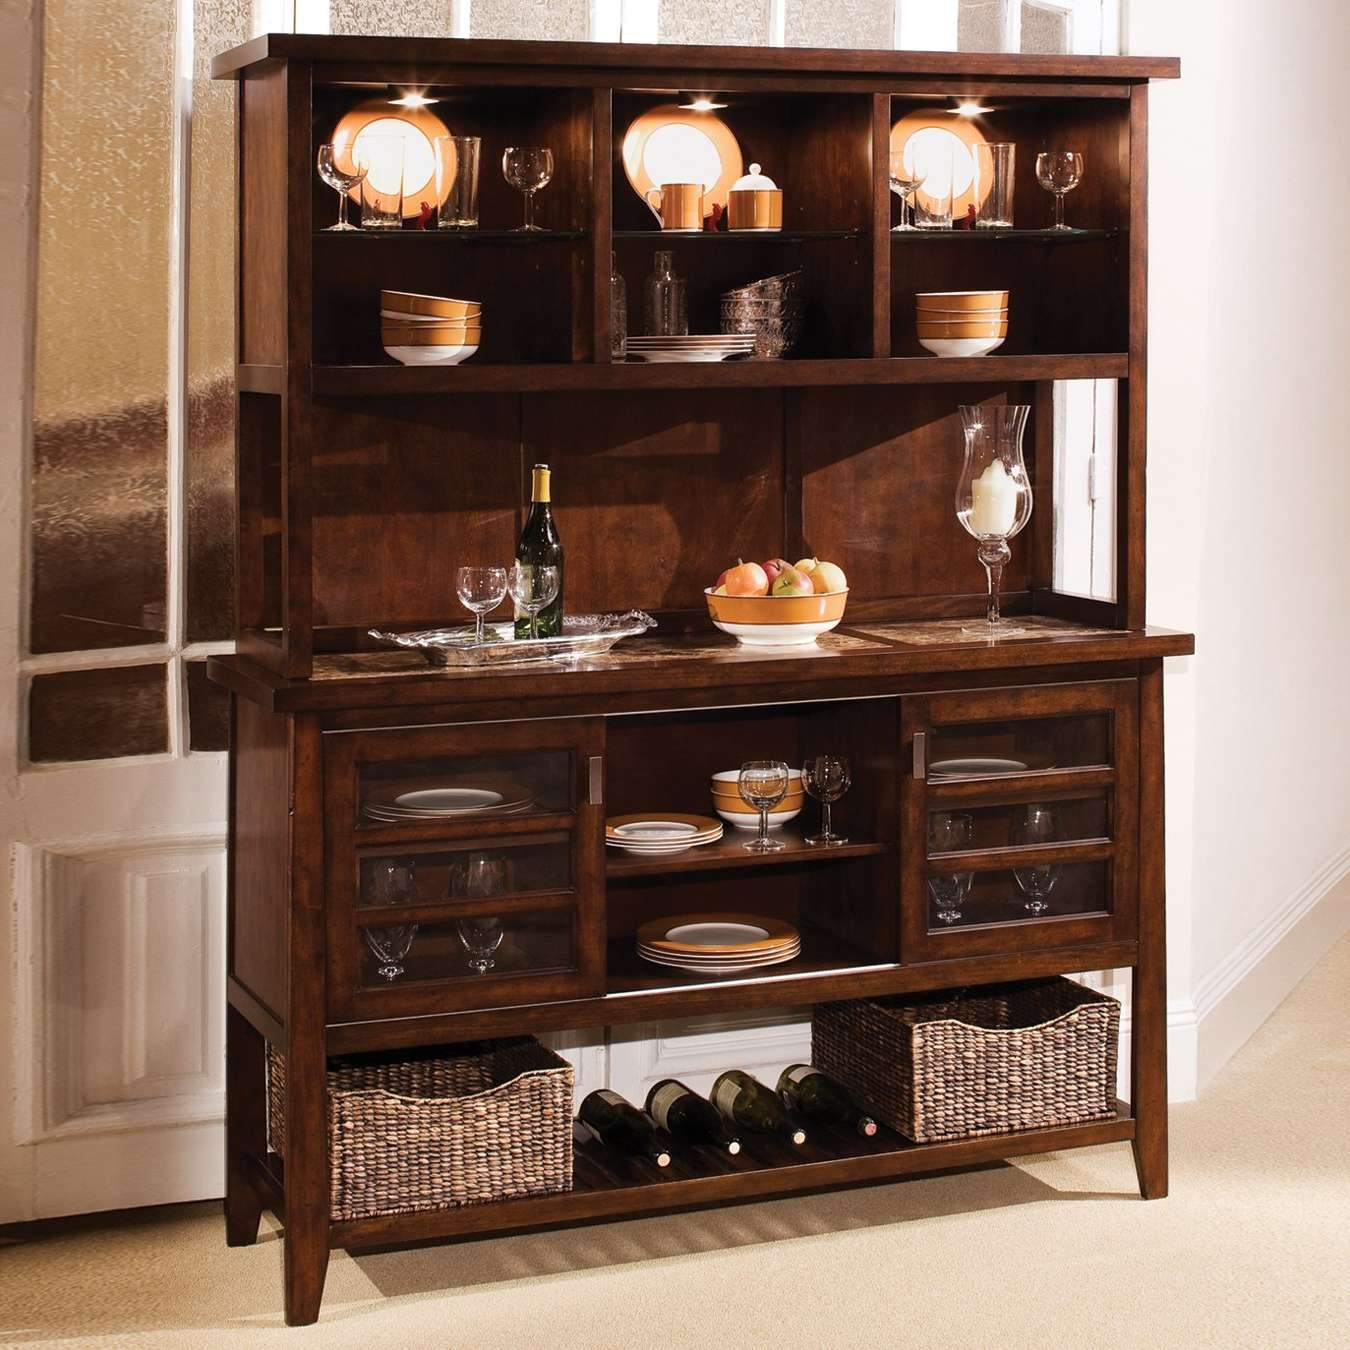 Sideboards: Extraordinary Kitchen Sideboards And Buffets Buffet Intended For Sideboards And Hutches (View 3 of 20)